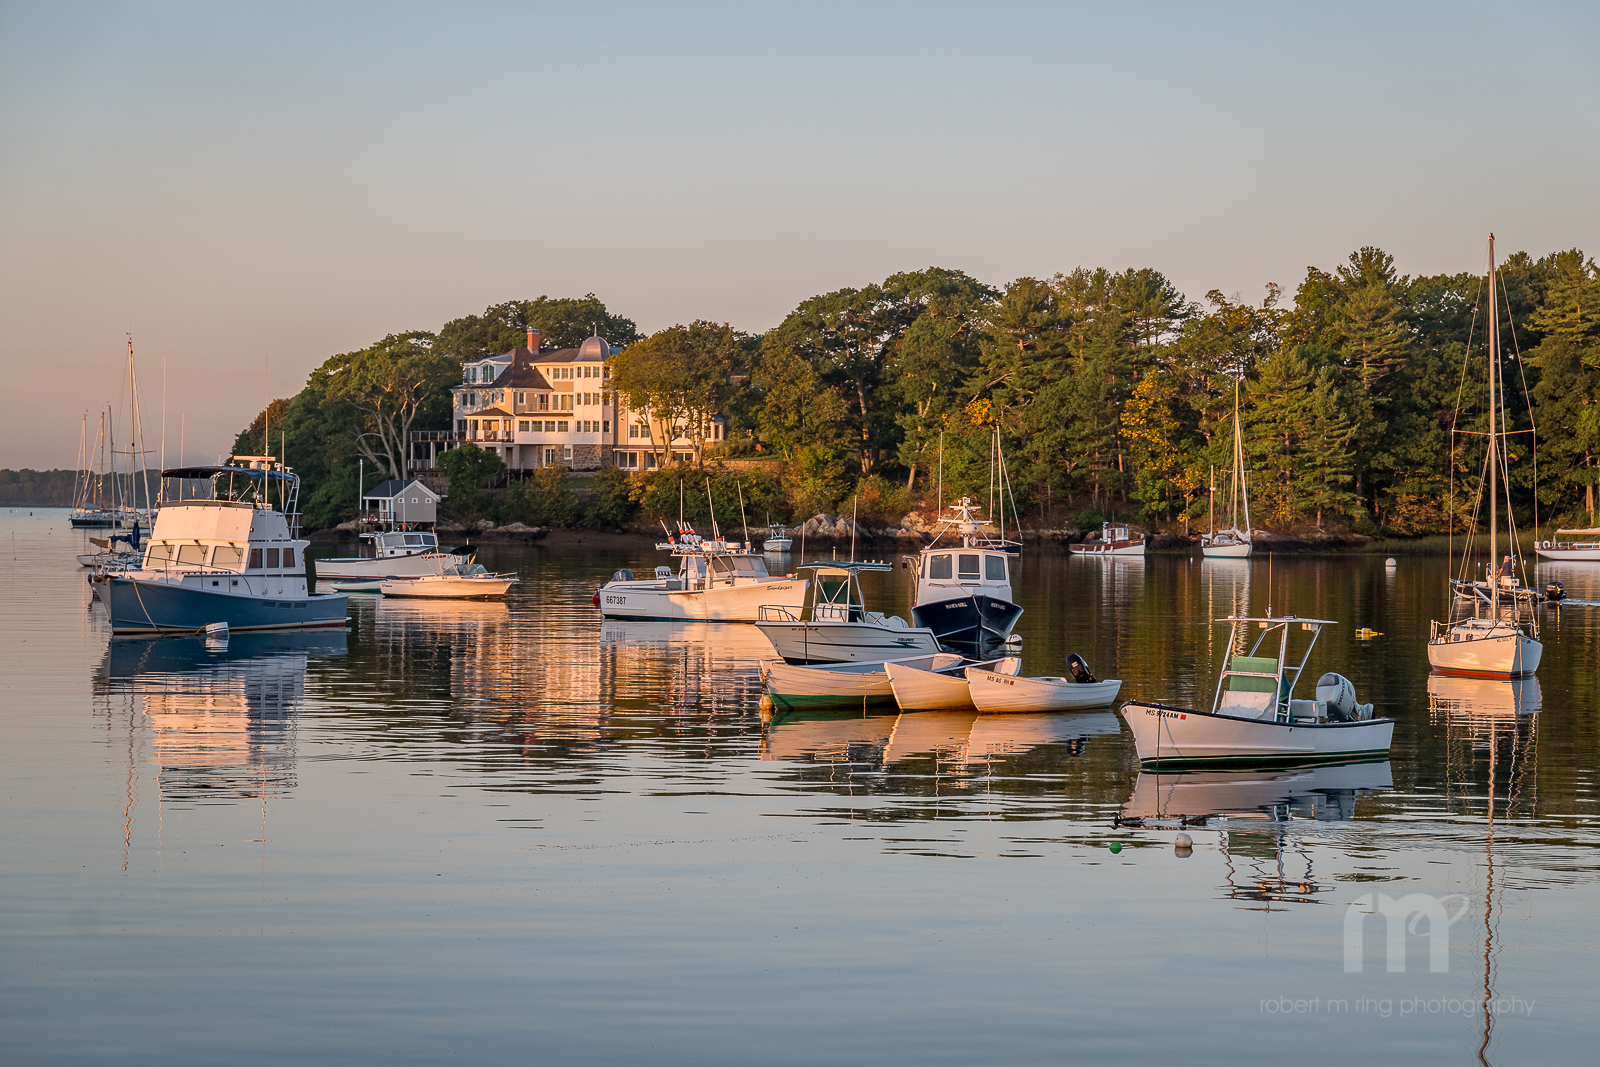 Sunrise, Scenic, Harbor, Landscape, New England, Lobster Boats, Boats